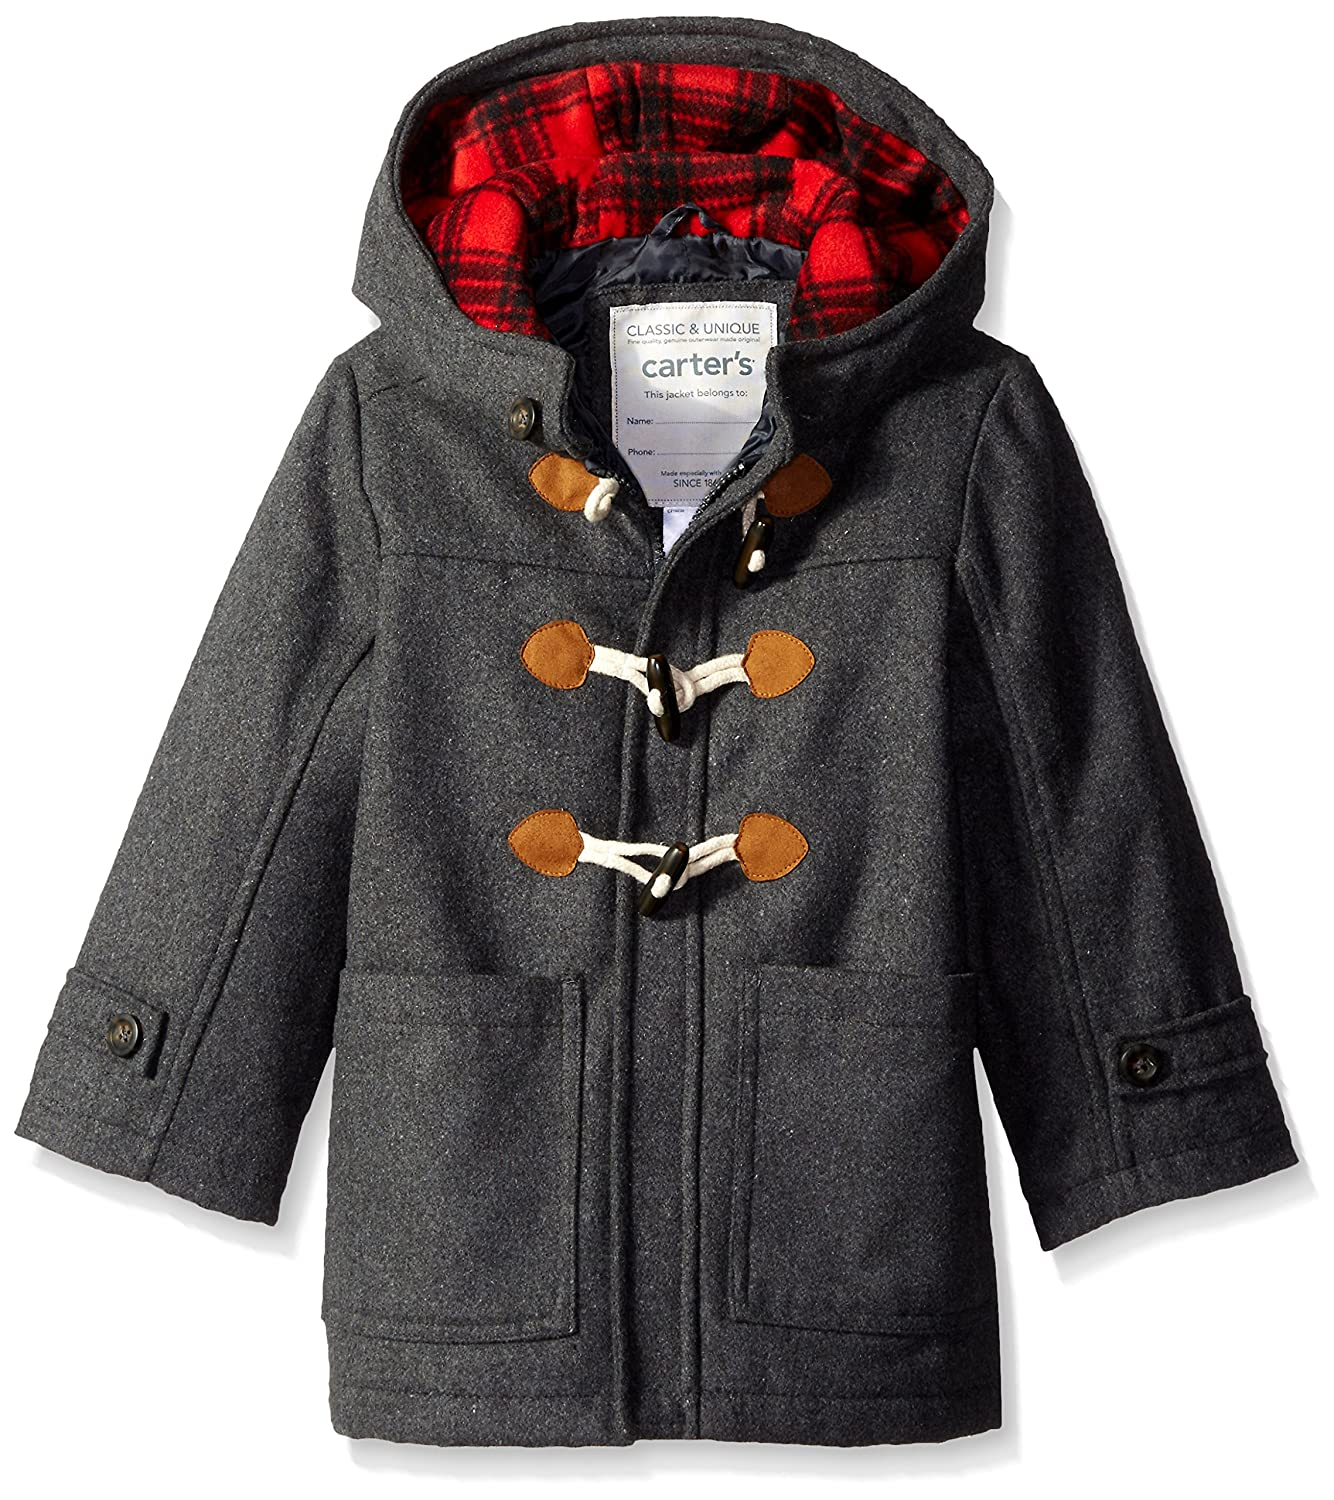 Carter's Boys' Faux Wool Heavyweight Toggle Jacket Grey 4 C216E36